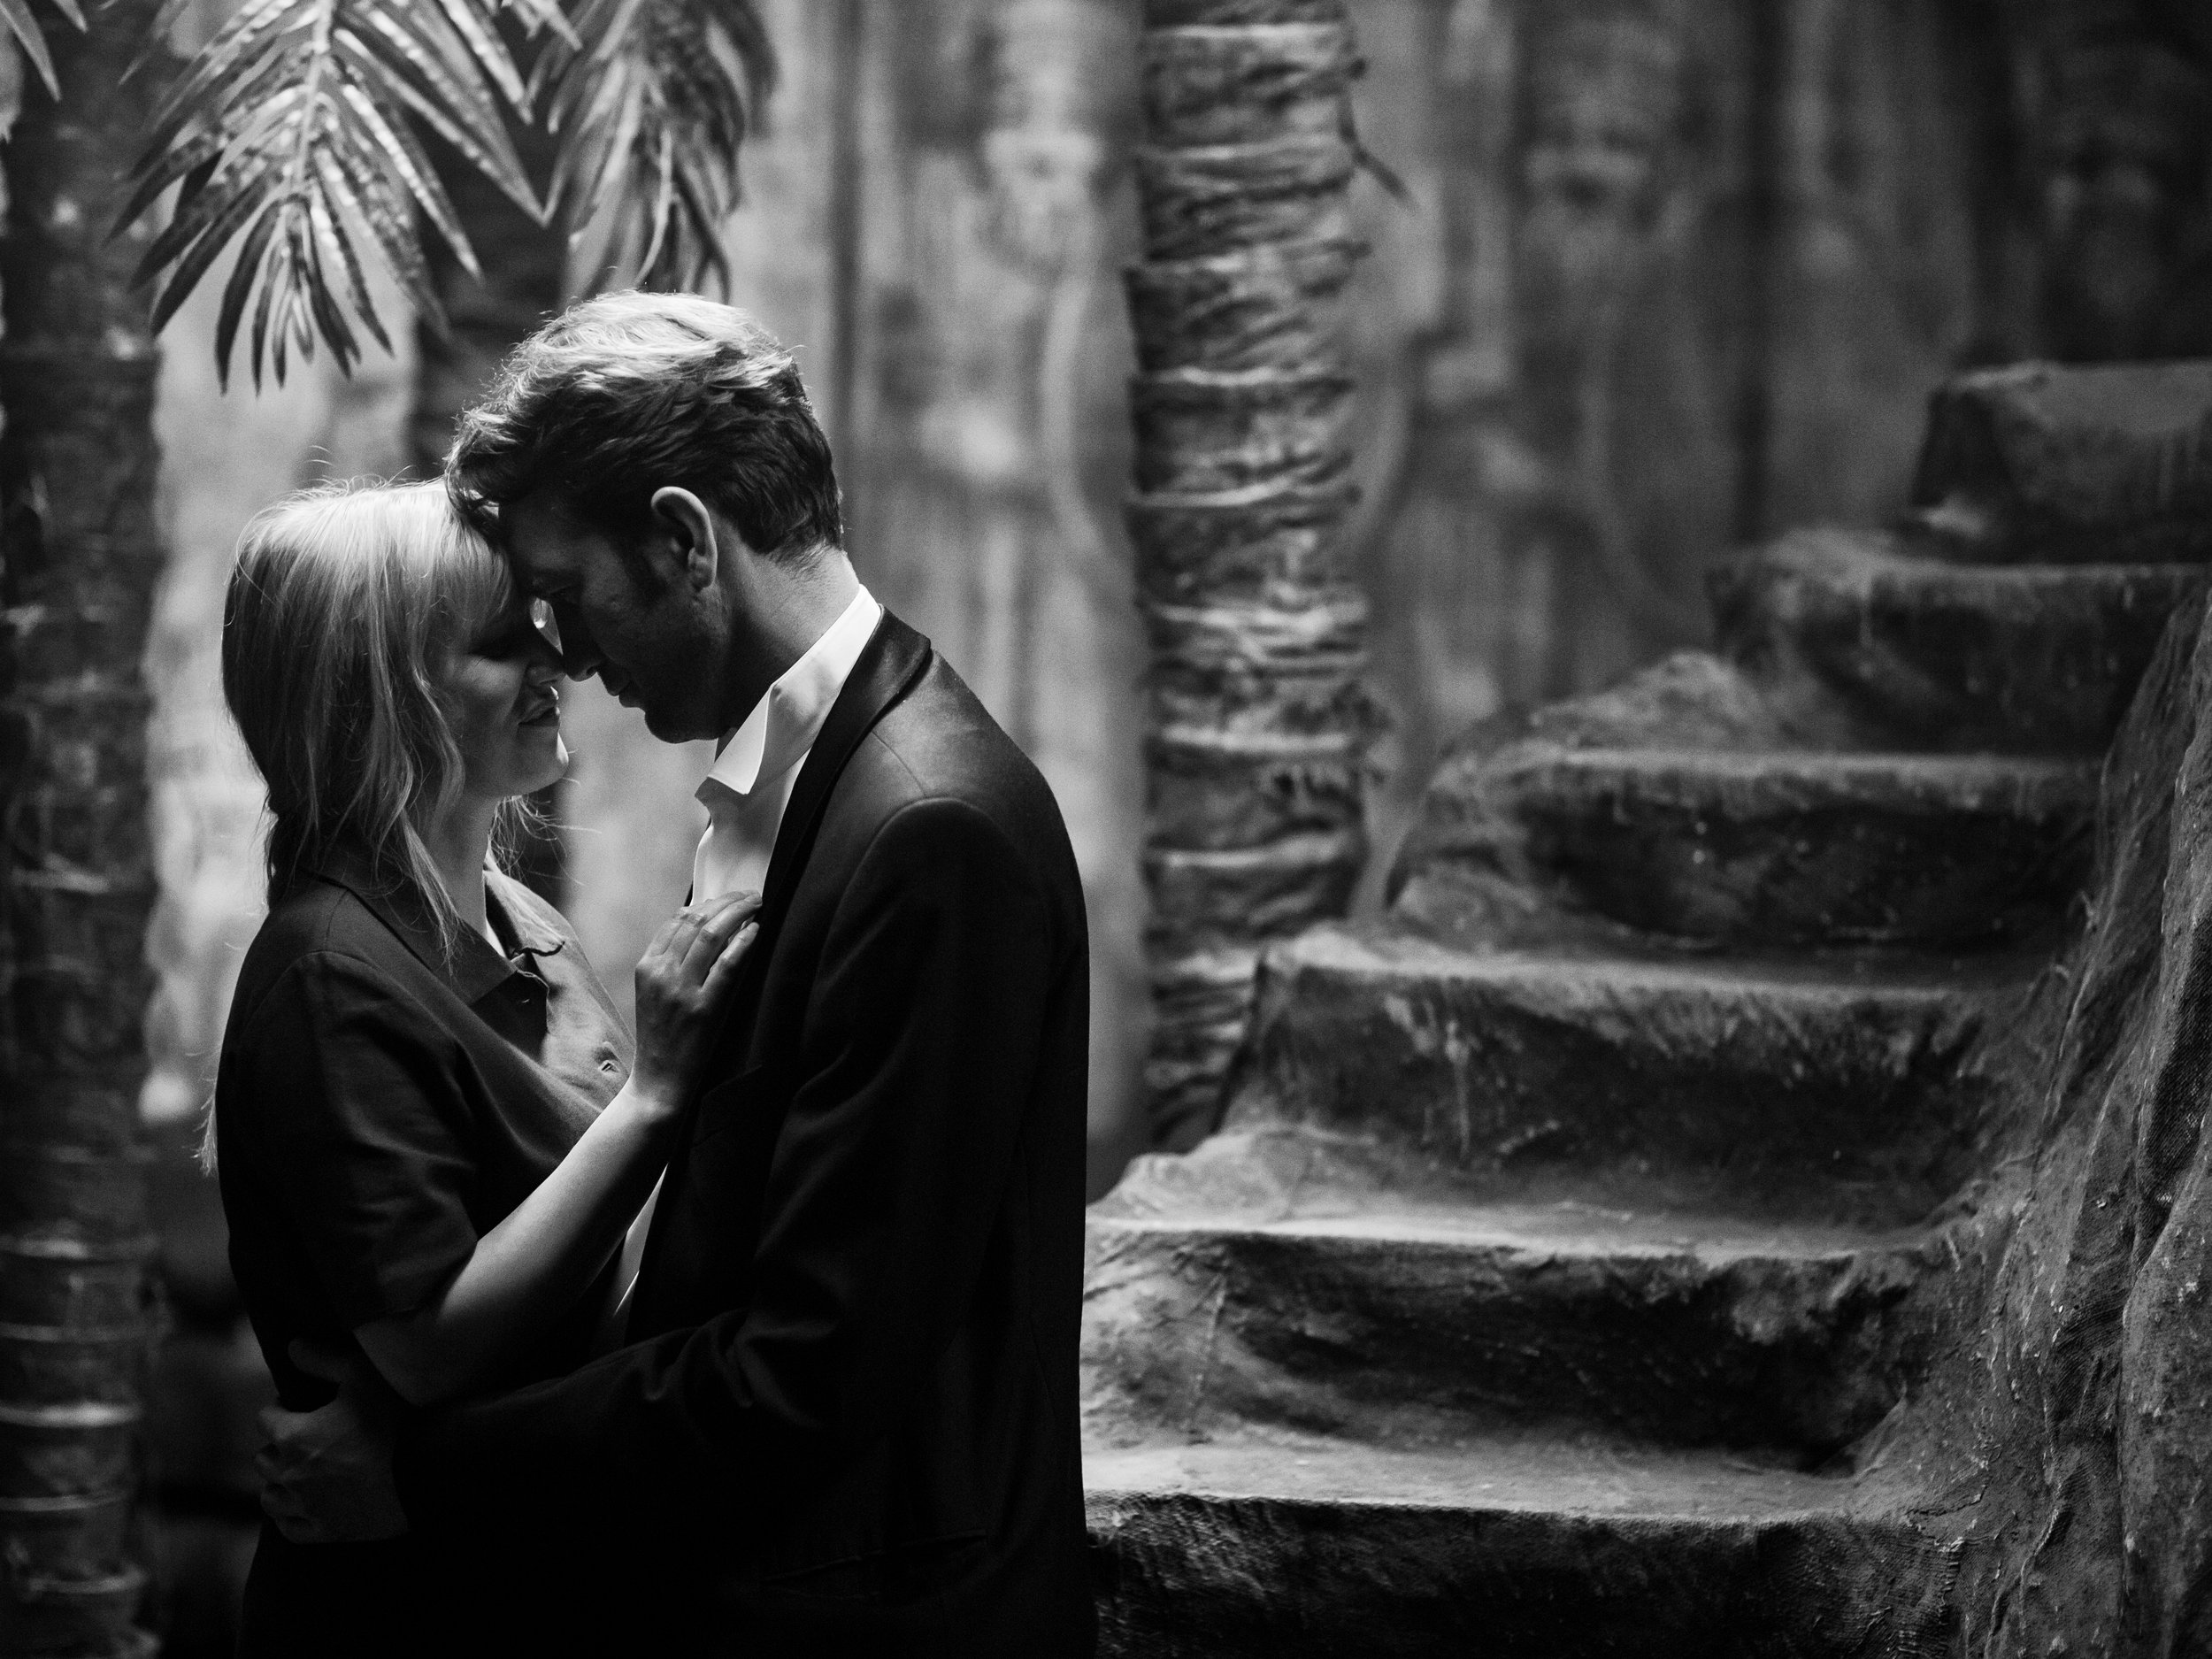 """Joanna Kulig, left, and Tomasz Kot play lovers caught up in politics and passion in post-WWII Poland, in director Pawel Pawlikowski's """"Cold War."""" (Photo by Lukasz Bak, courtesy Amazon Studios)"""